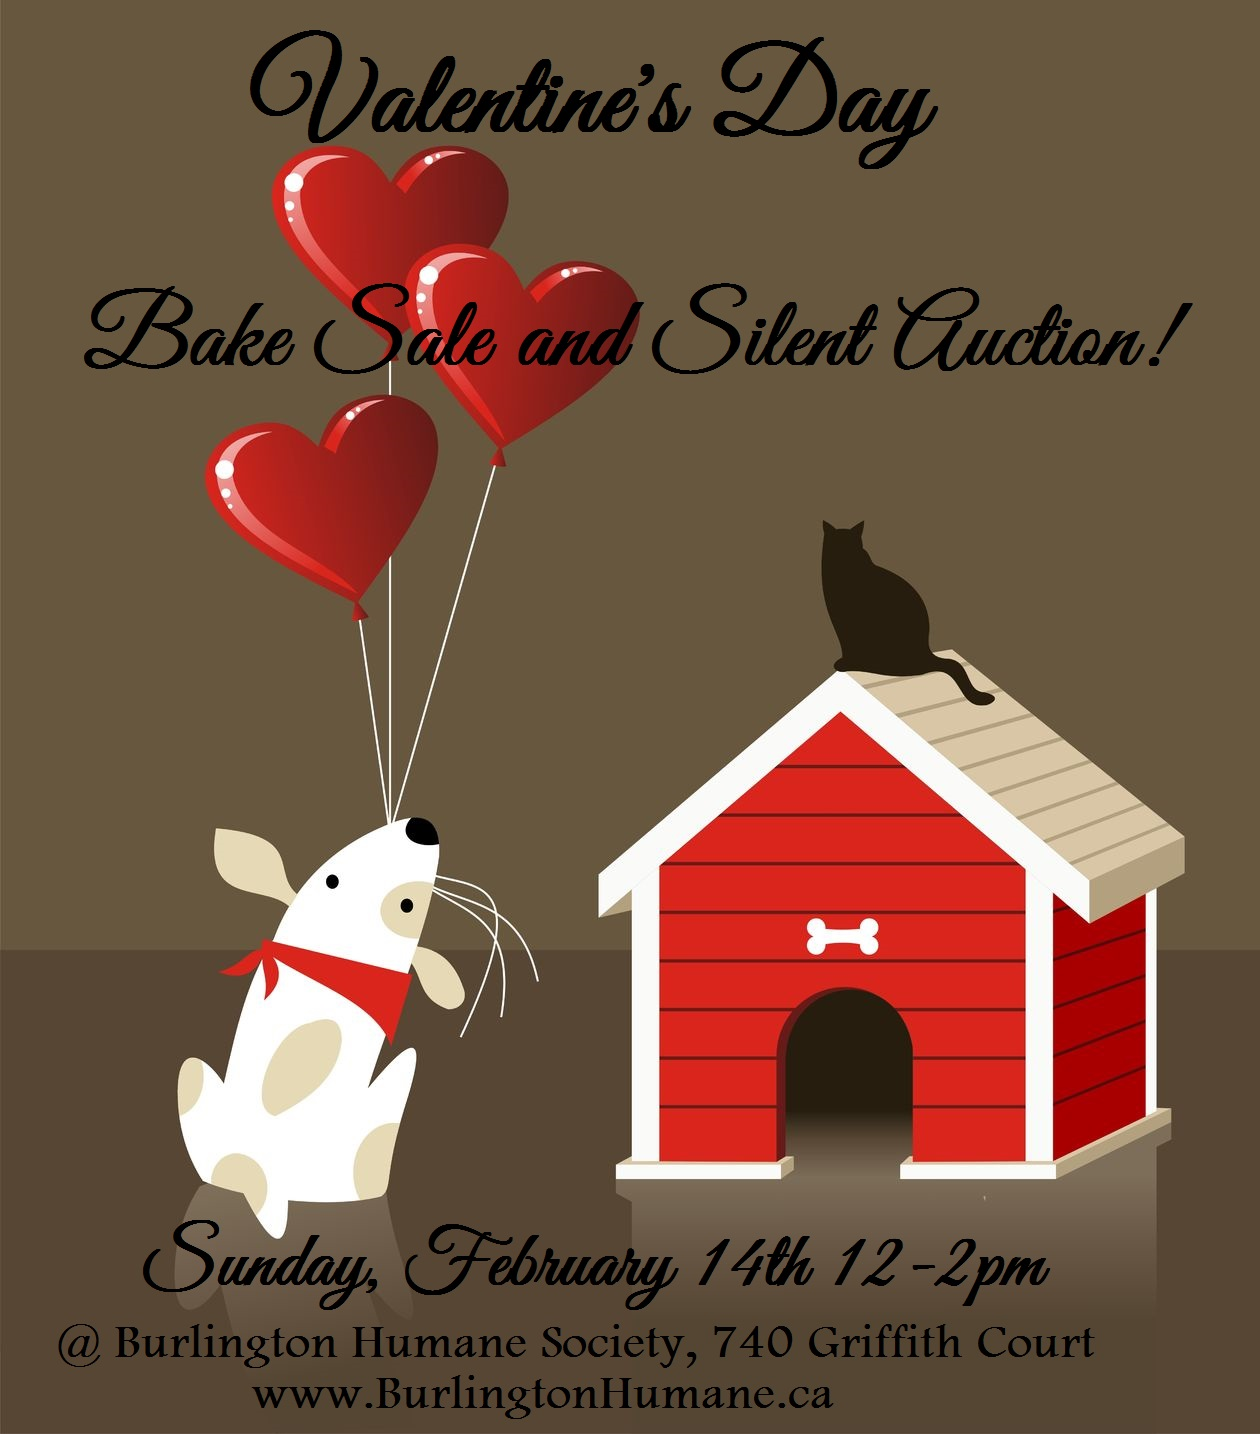 Burlington Humane Society Valentine S Day Bake Sale And Silent Auction